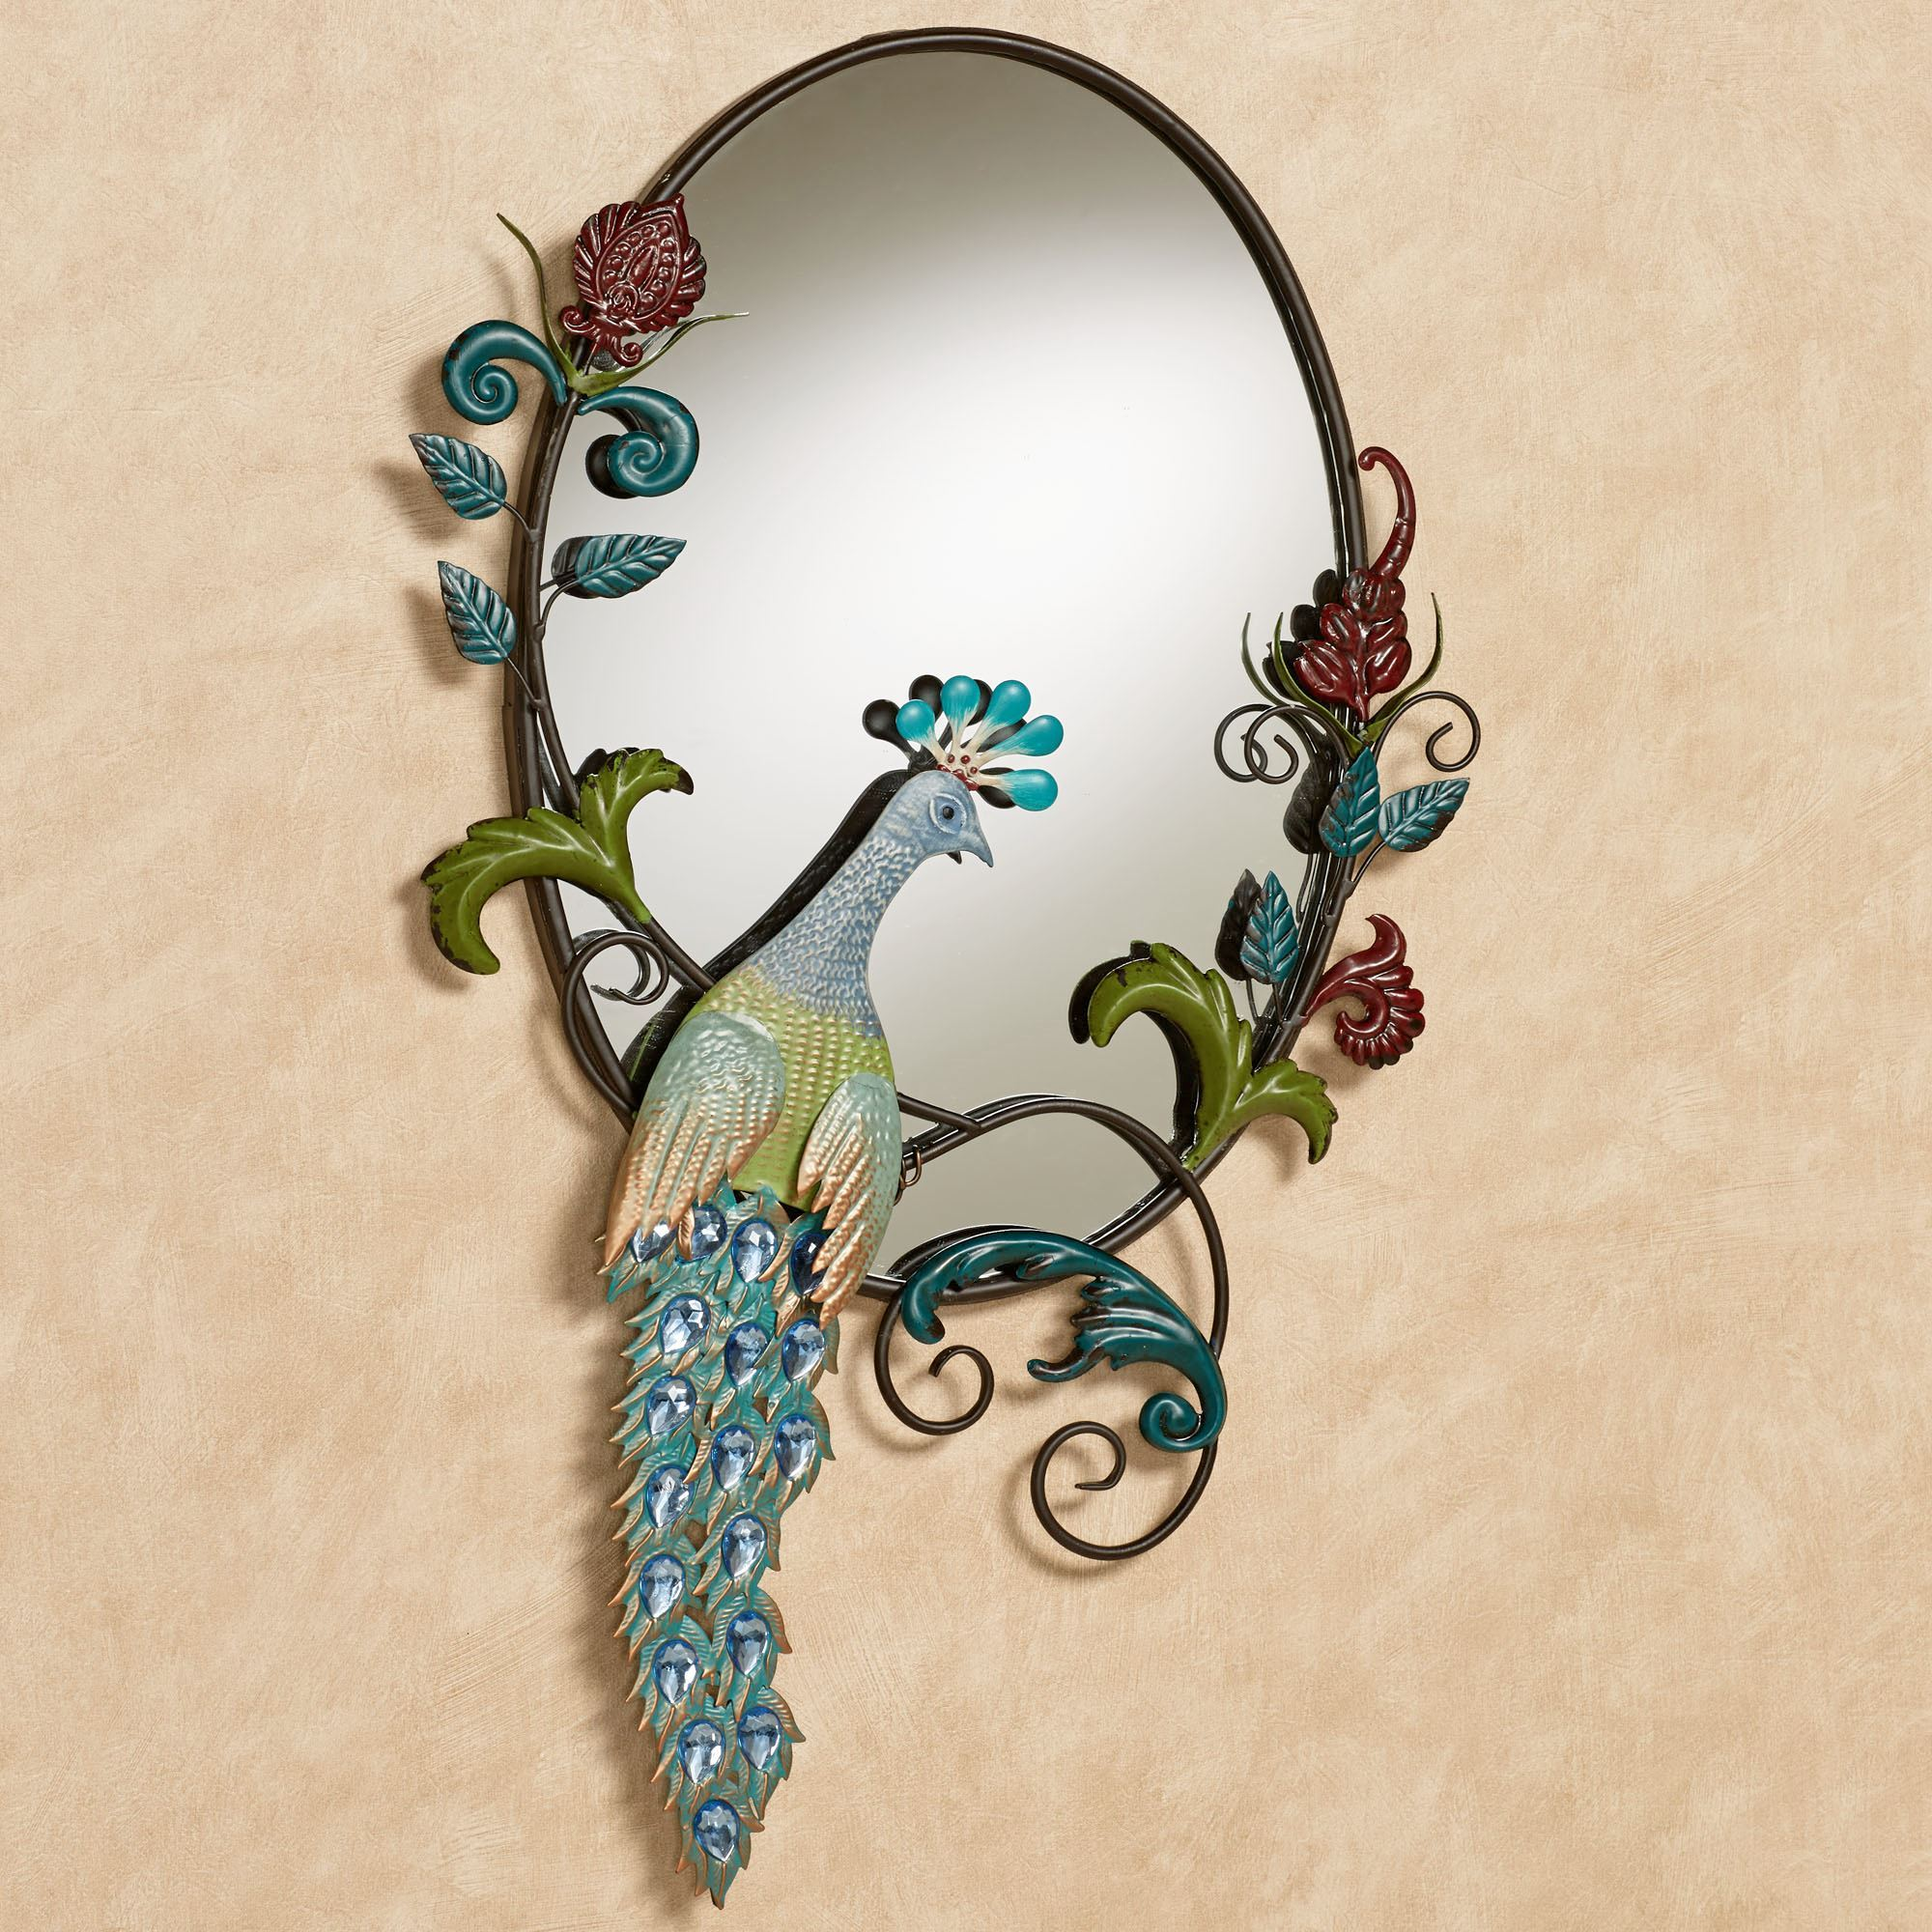 Beau Glorious Peacock Wall Mirror Multi Jewel. Click To Expand